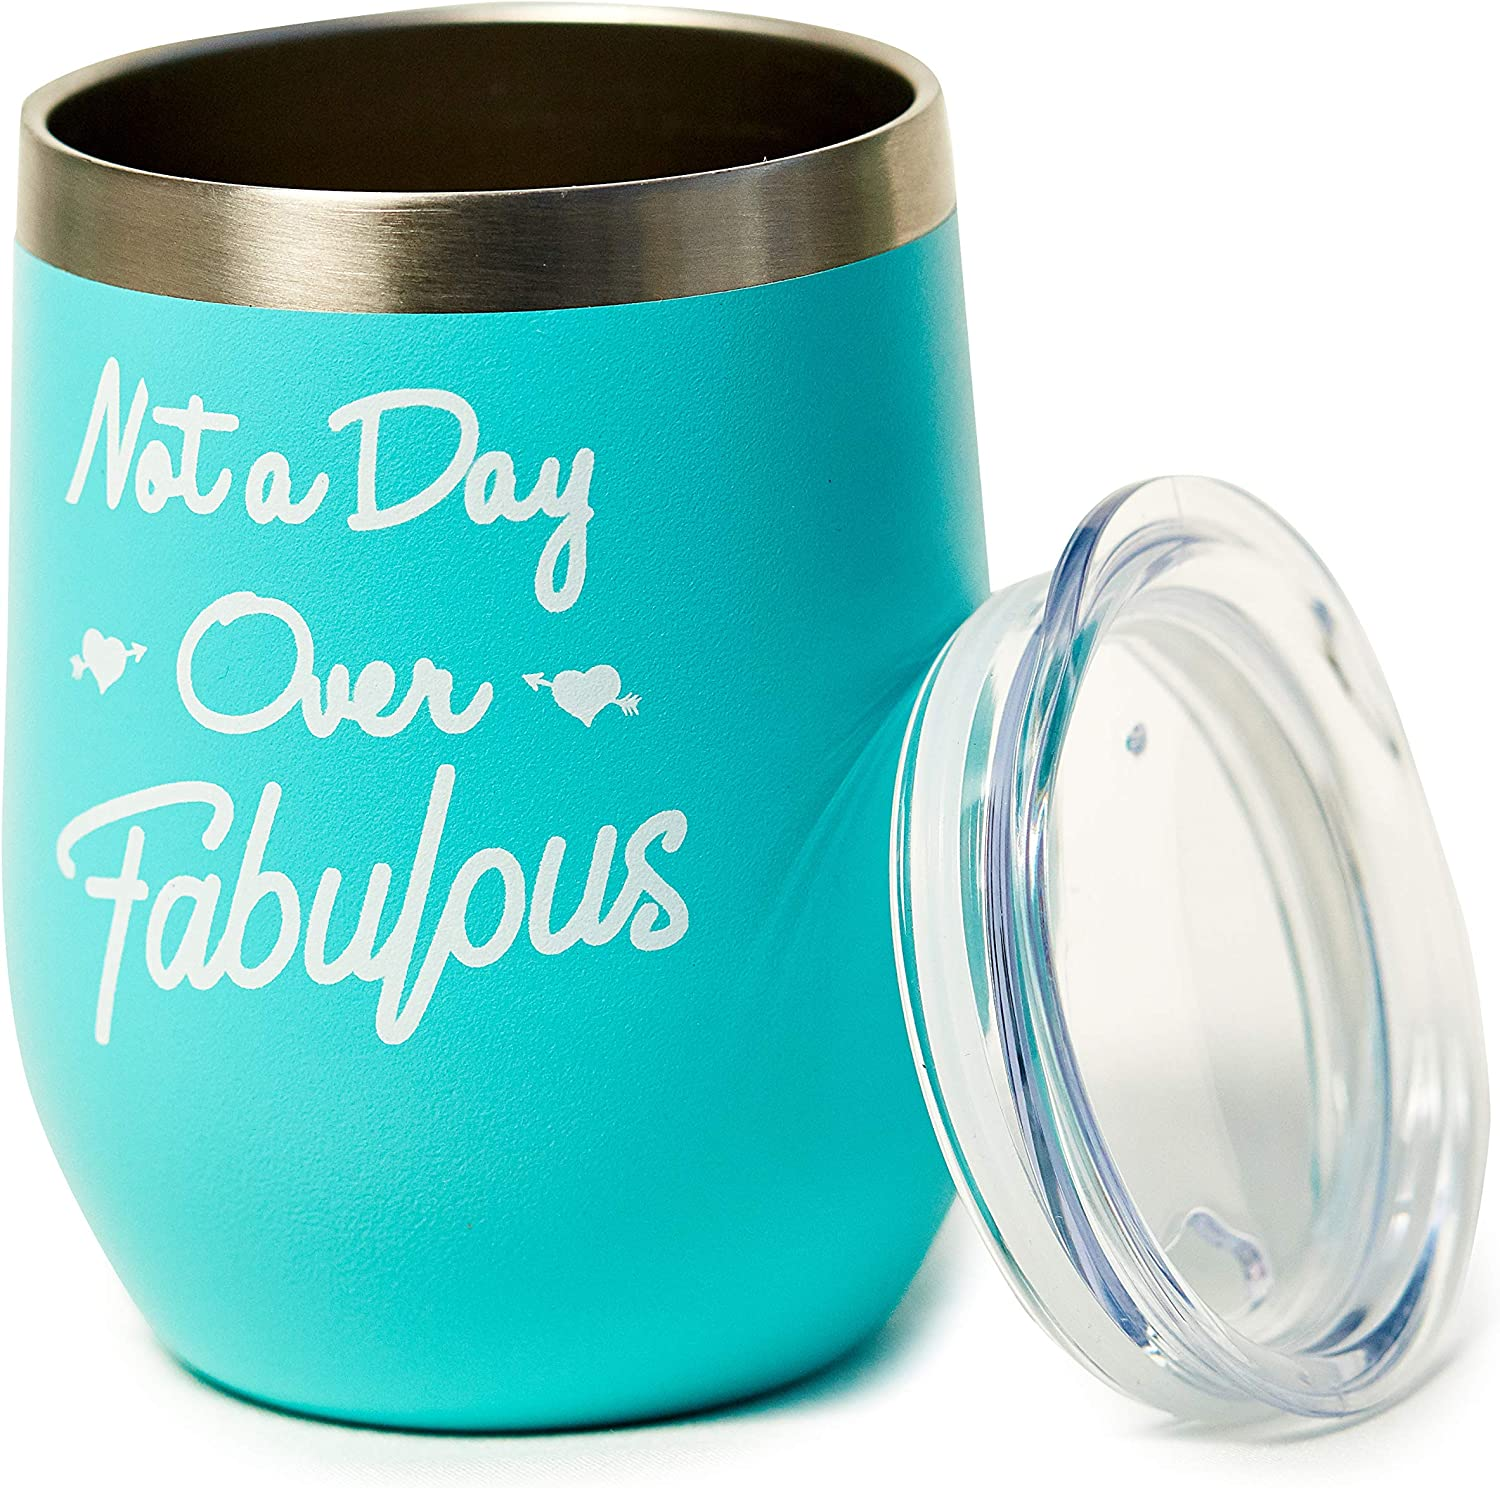 Not A Day Over Fabulous - Gifts for Her Birthday - Birthday Gifts for Women, Mom, Girlfriend, Best Friends, Daughter, Grandma, Wife, Teacher - 12oz Insulated Wine Tumbler with Lid - Mint